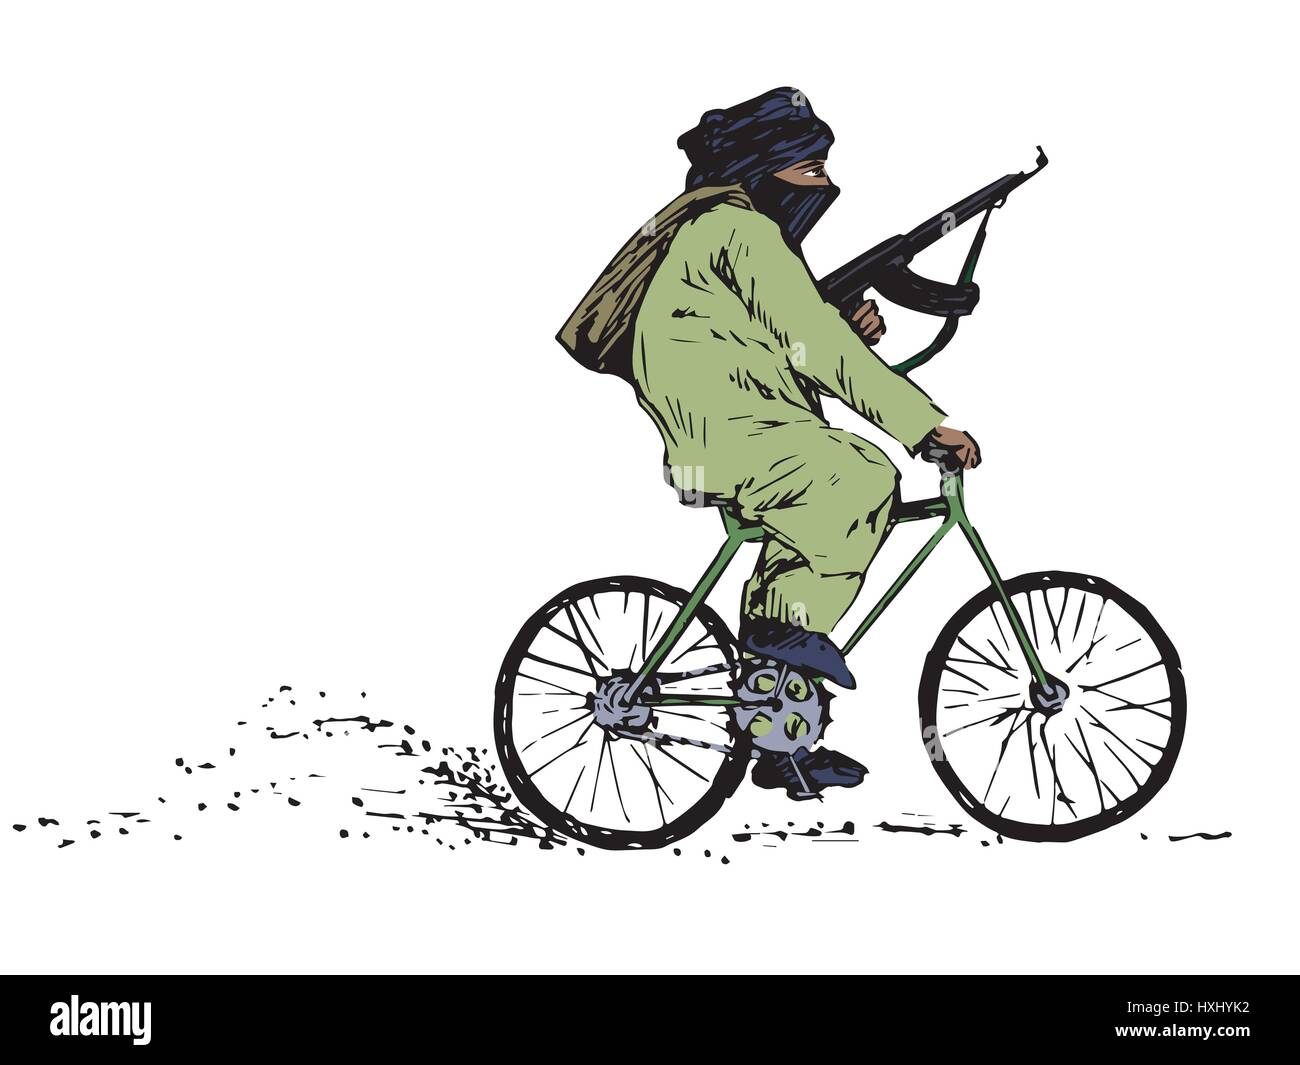 Terrorist with a gun with the face covered riding a bicycle, color isolated hand drawn vector illustration in ink - Stock Image